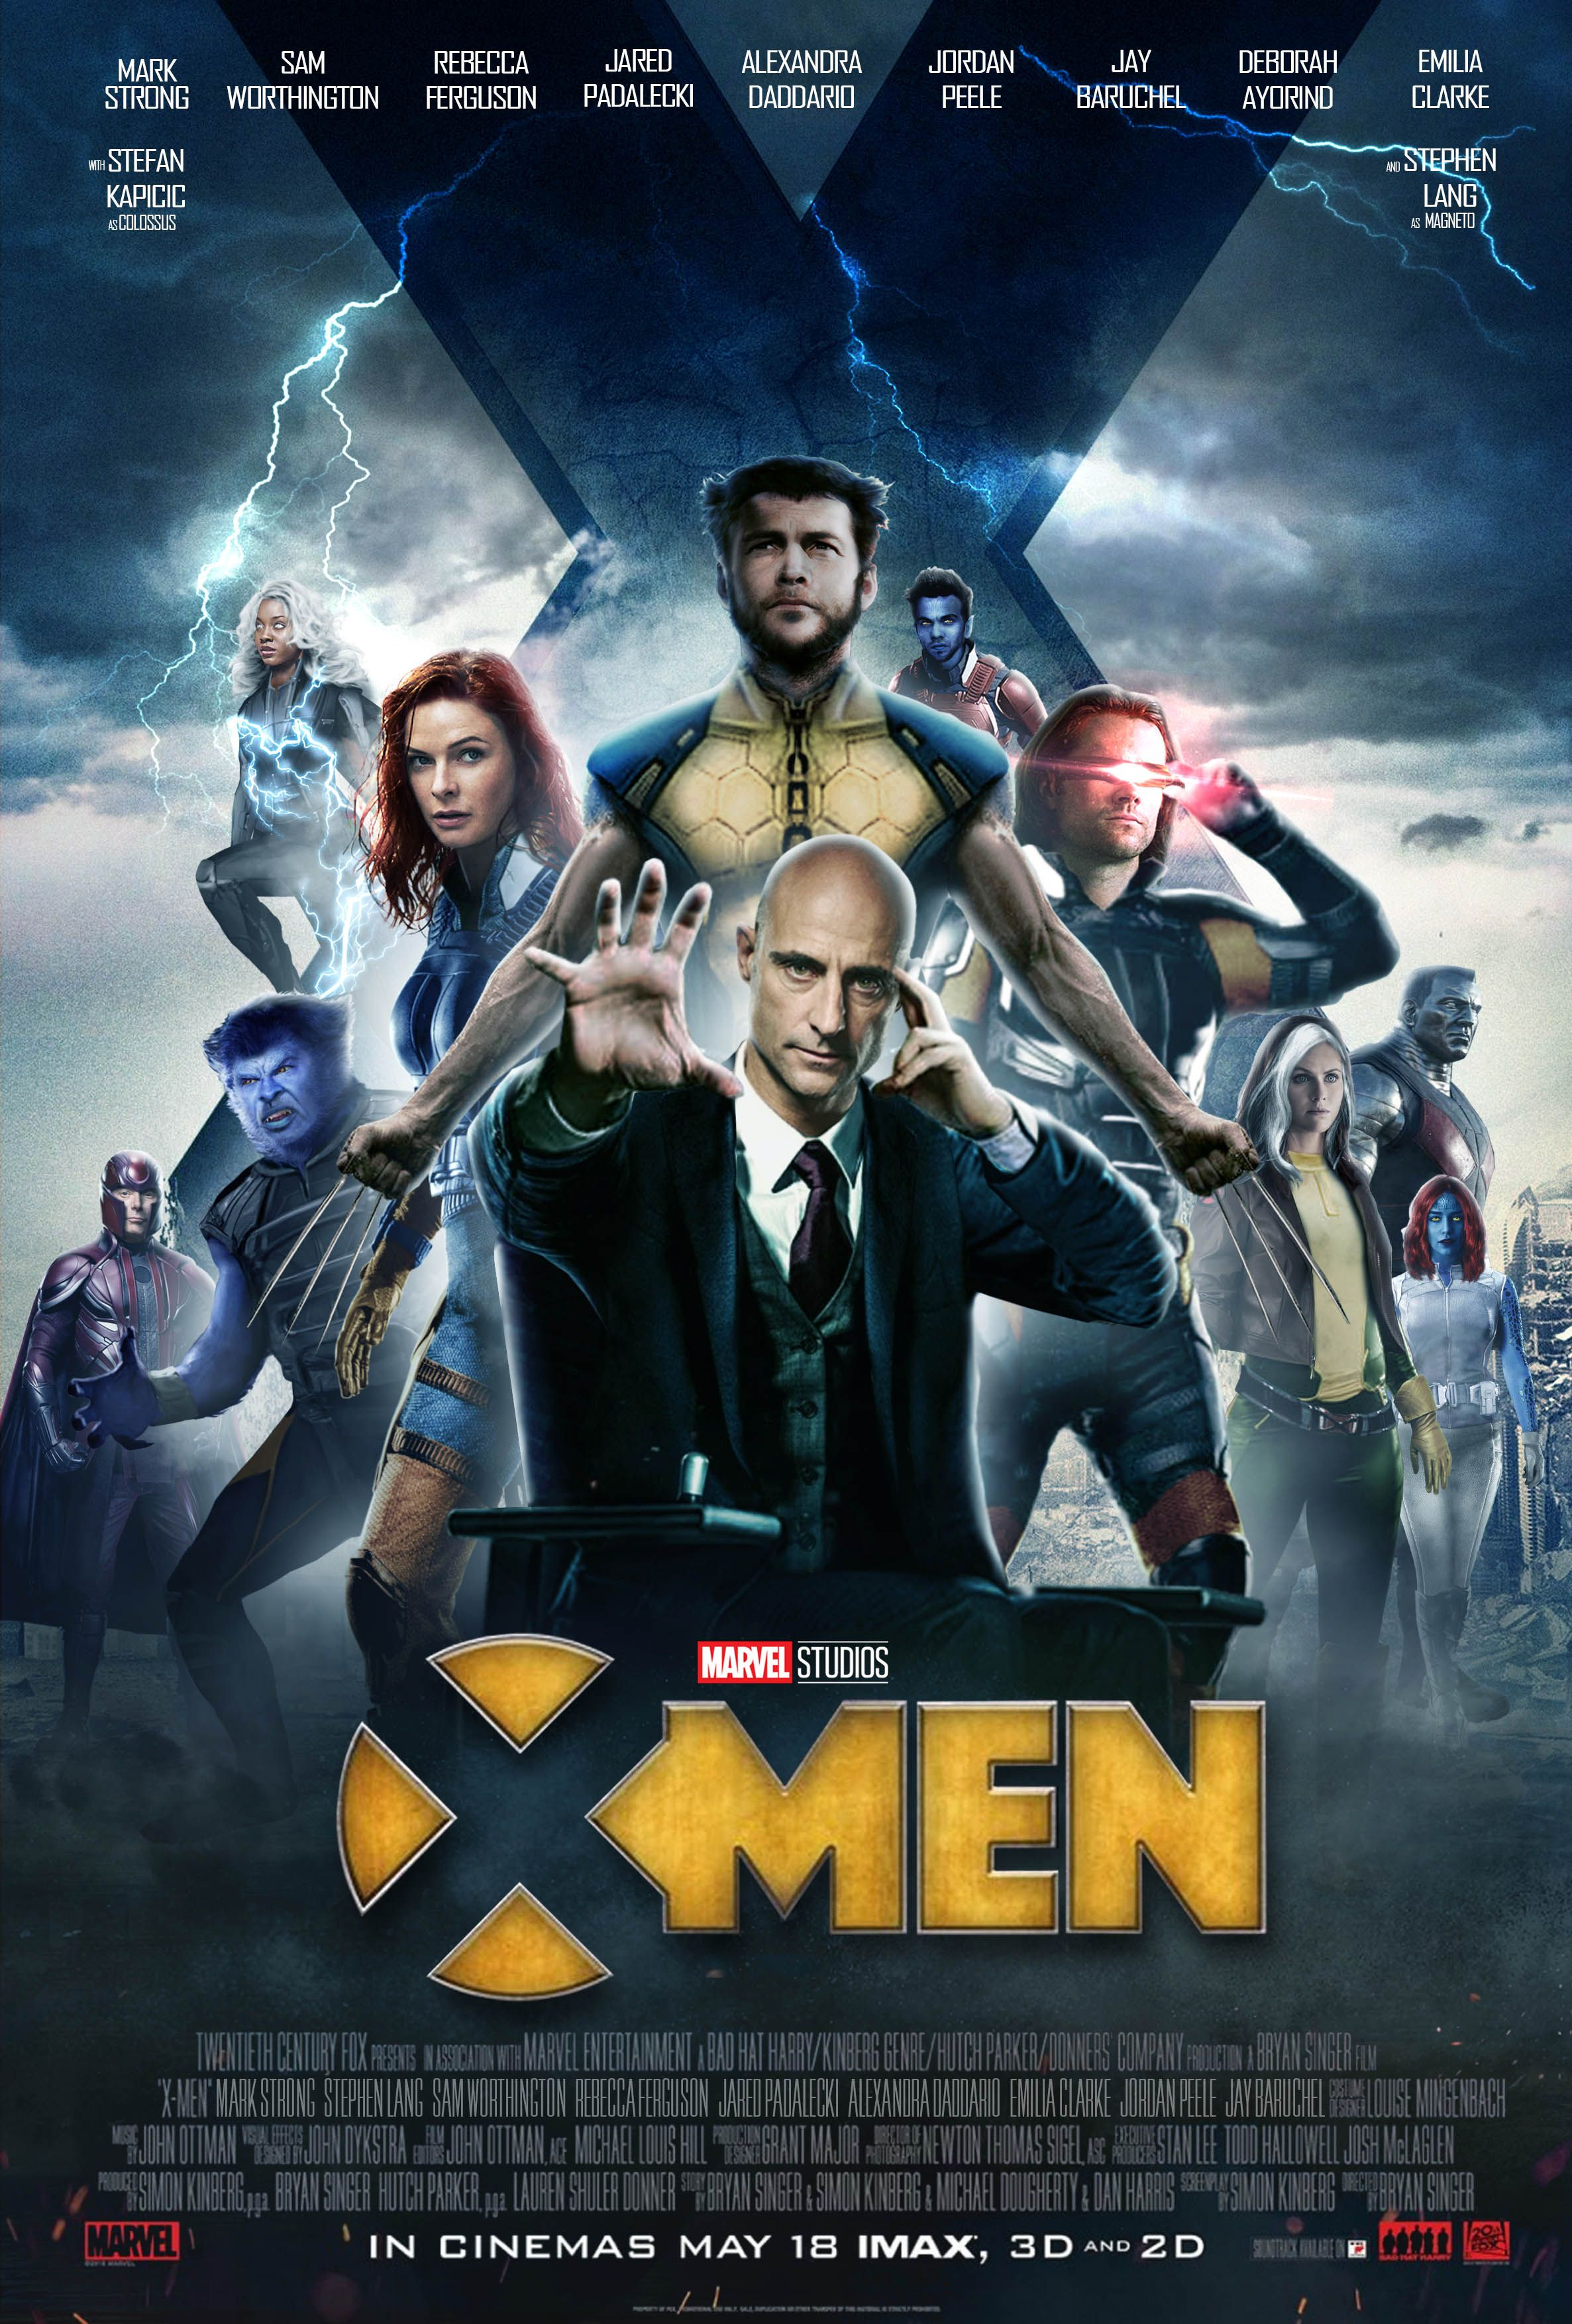 Mcu X Men Movie Poster Upcoming Marvel Movies X Men Marvel Cinematic